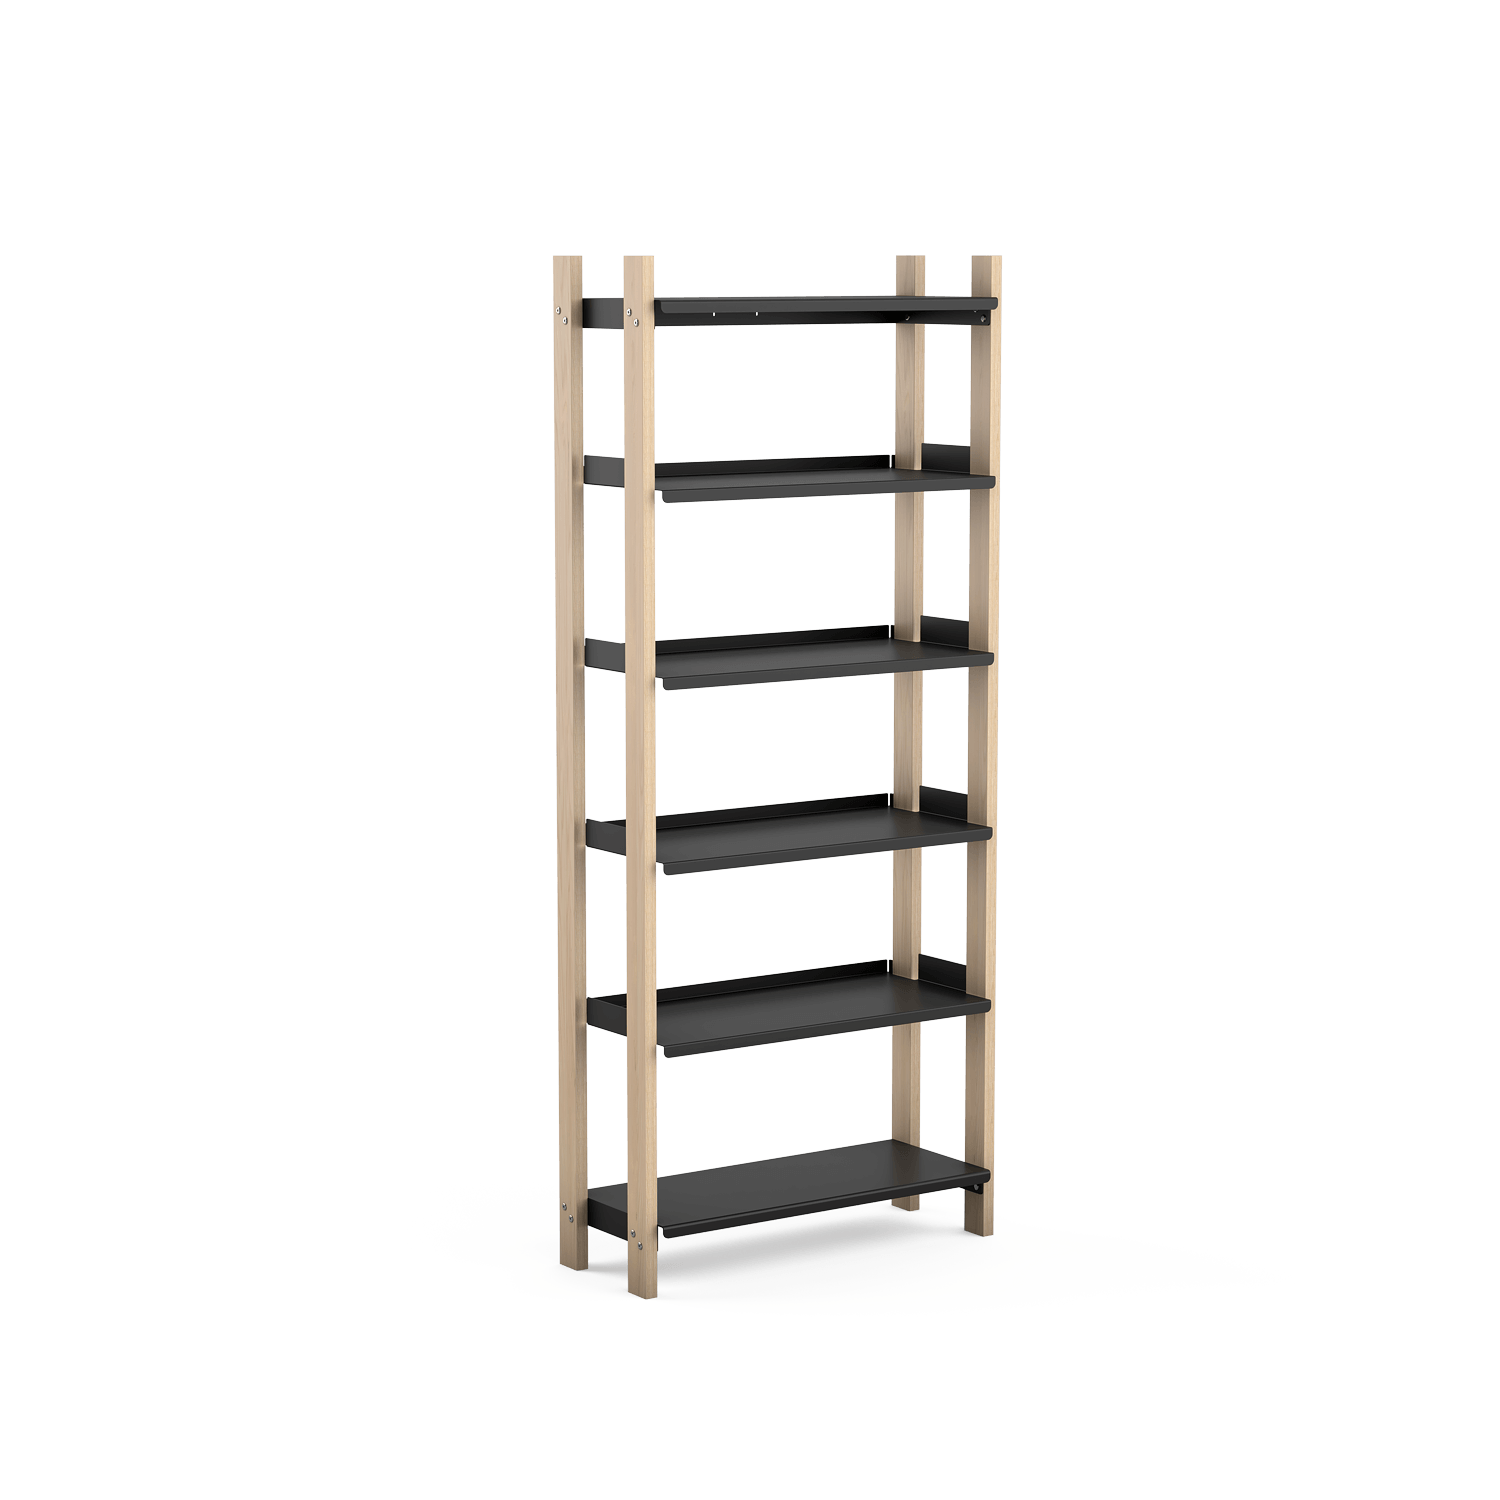 Rendering of tall shelf